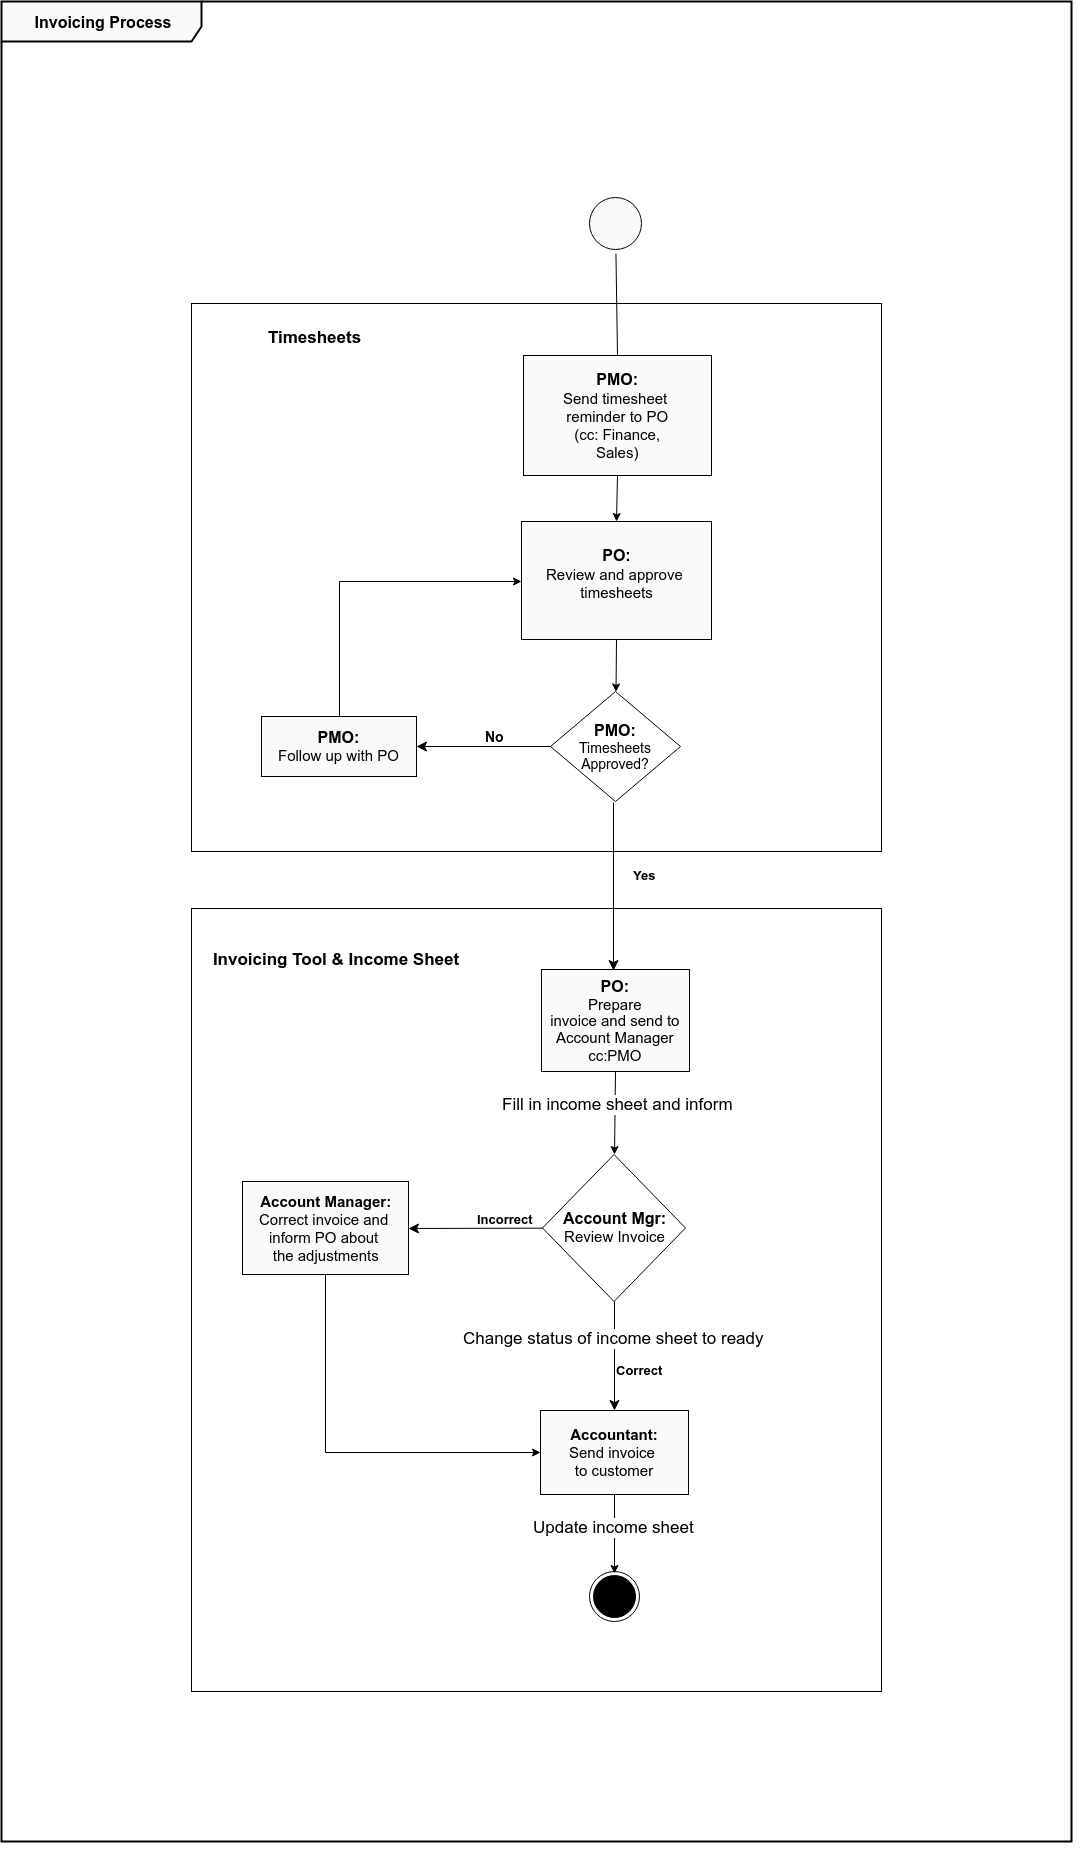 UML activity diagram for the invoice process